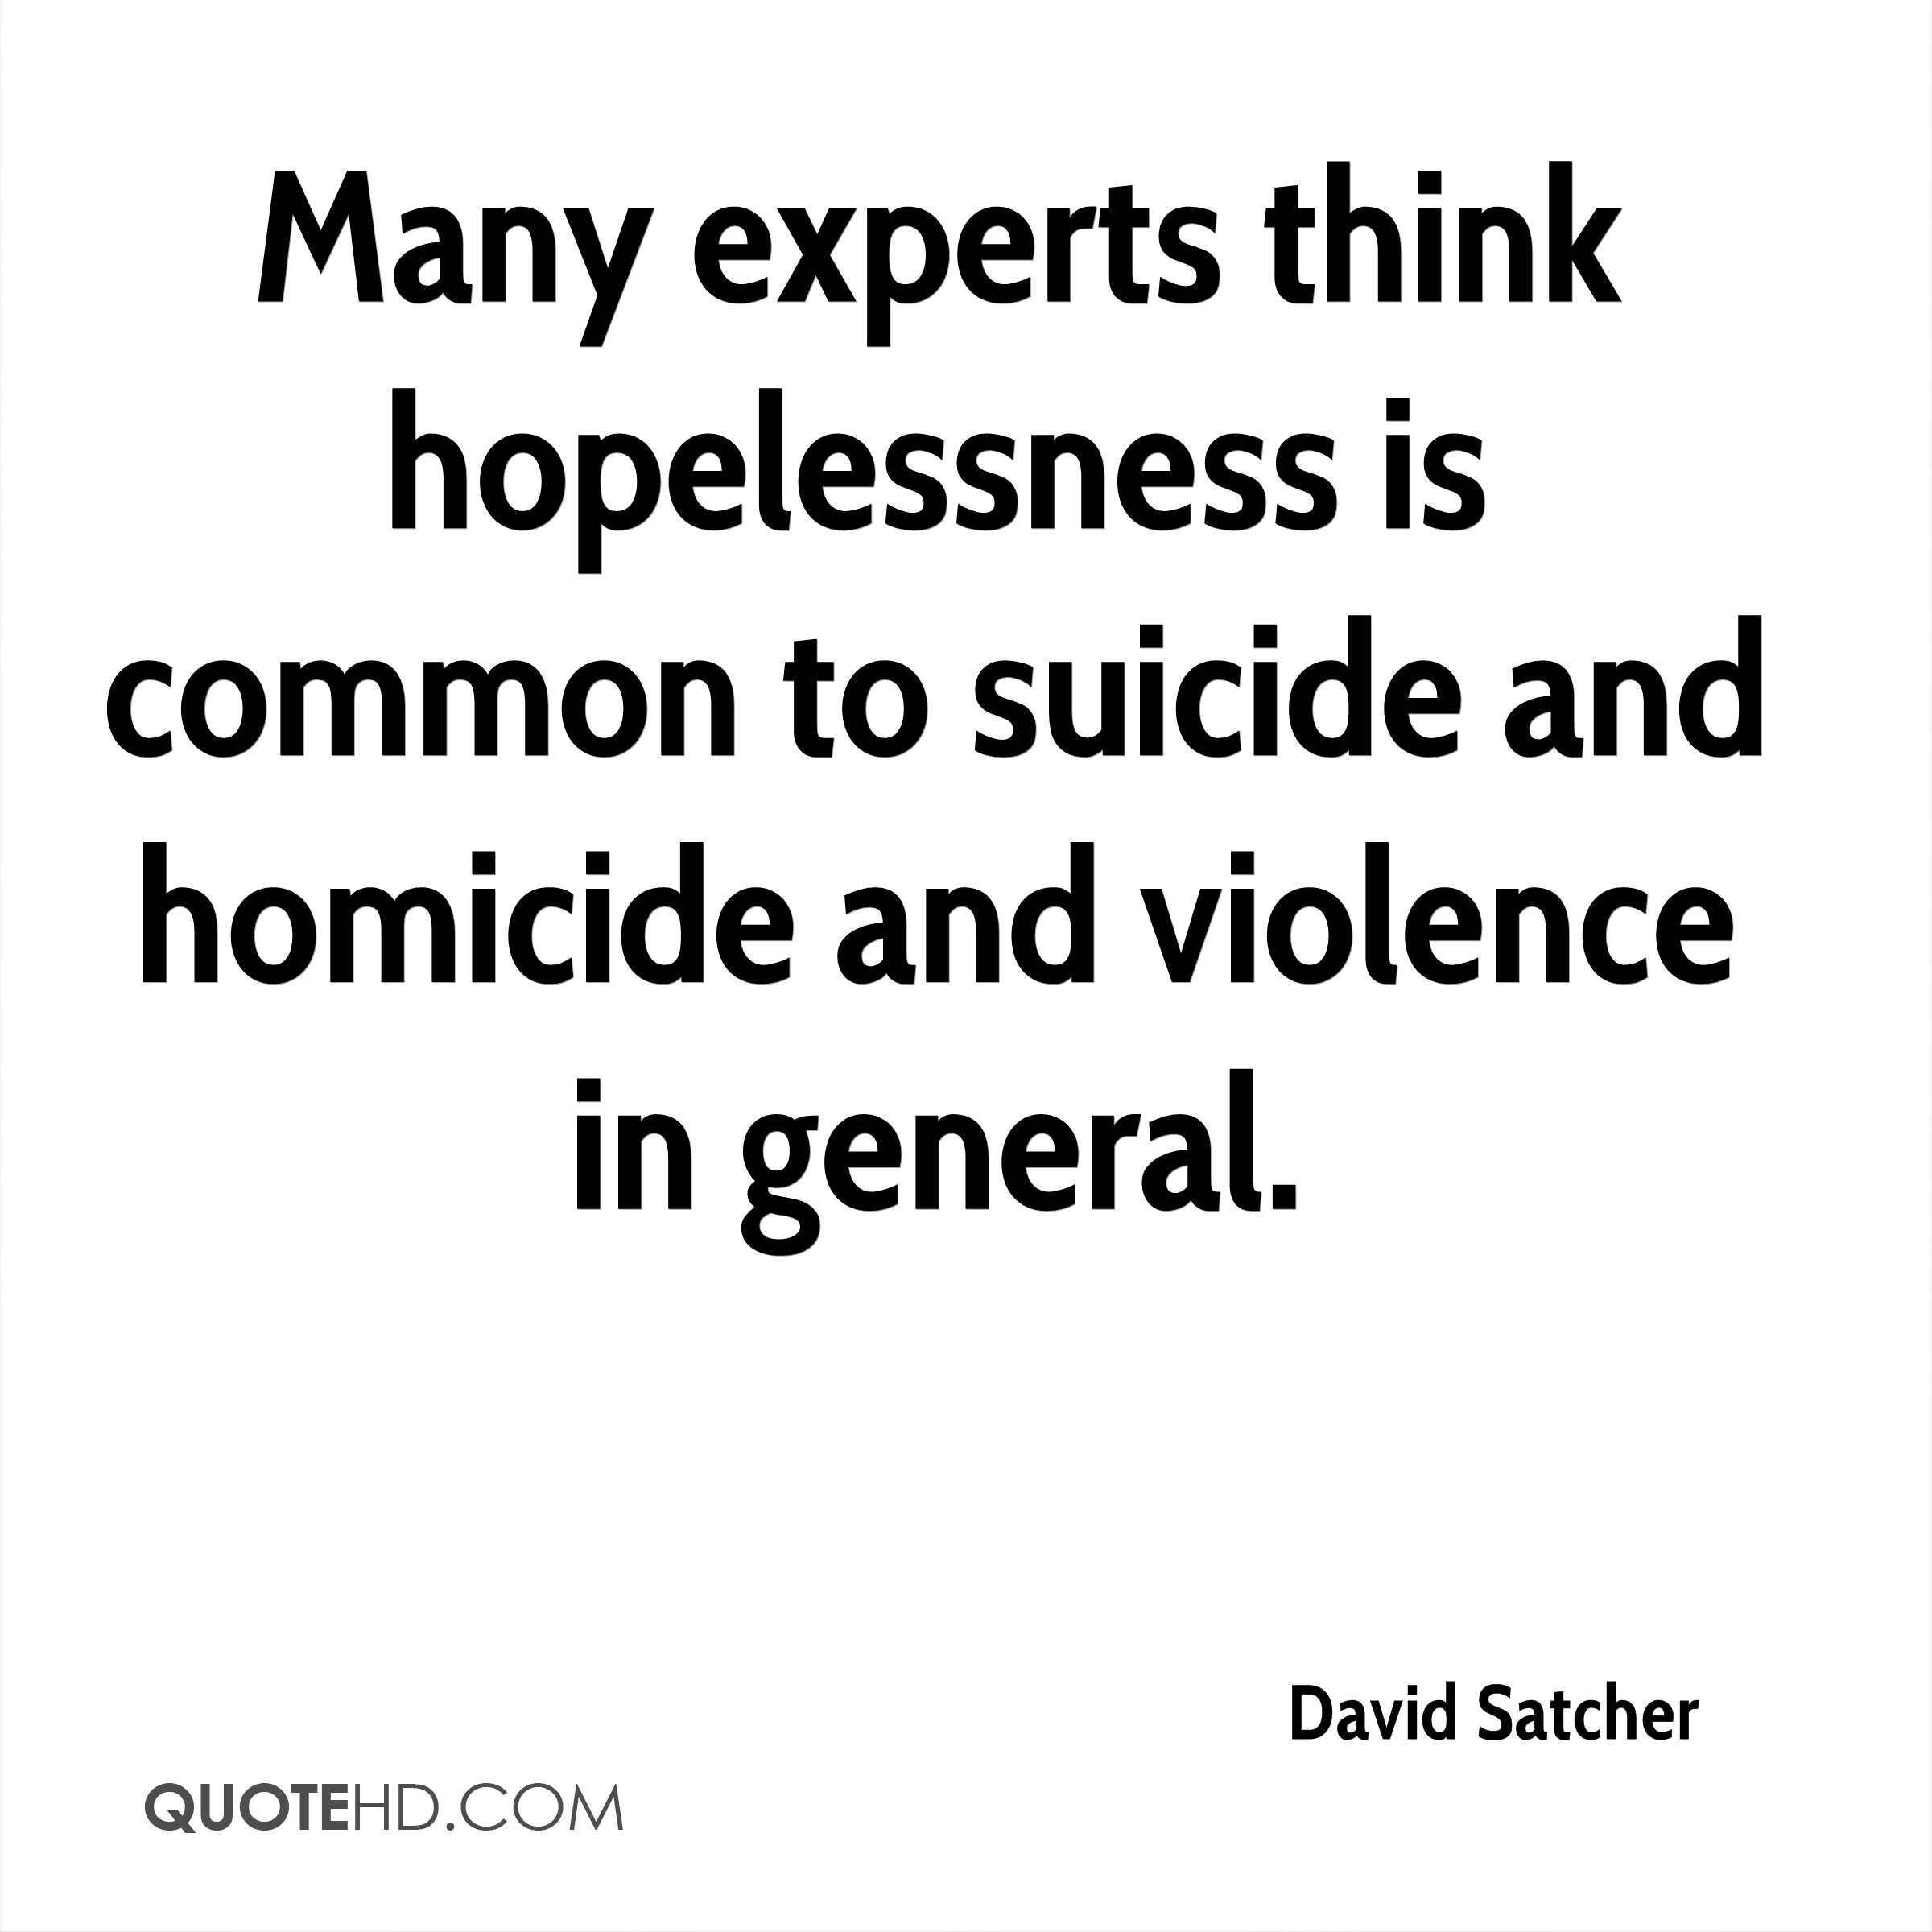 Many experts think hopelessness is common to suicide and homicide and violence in general.